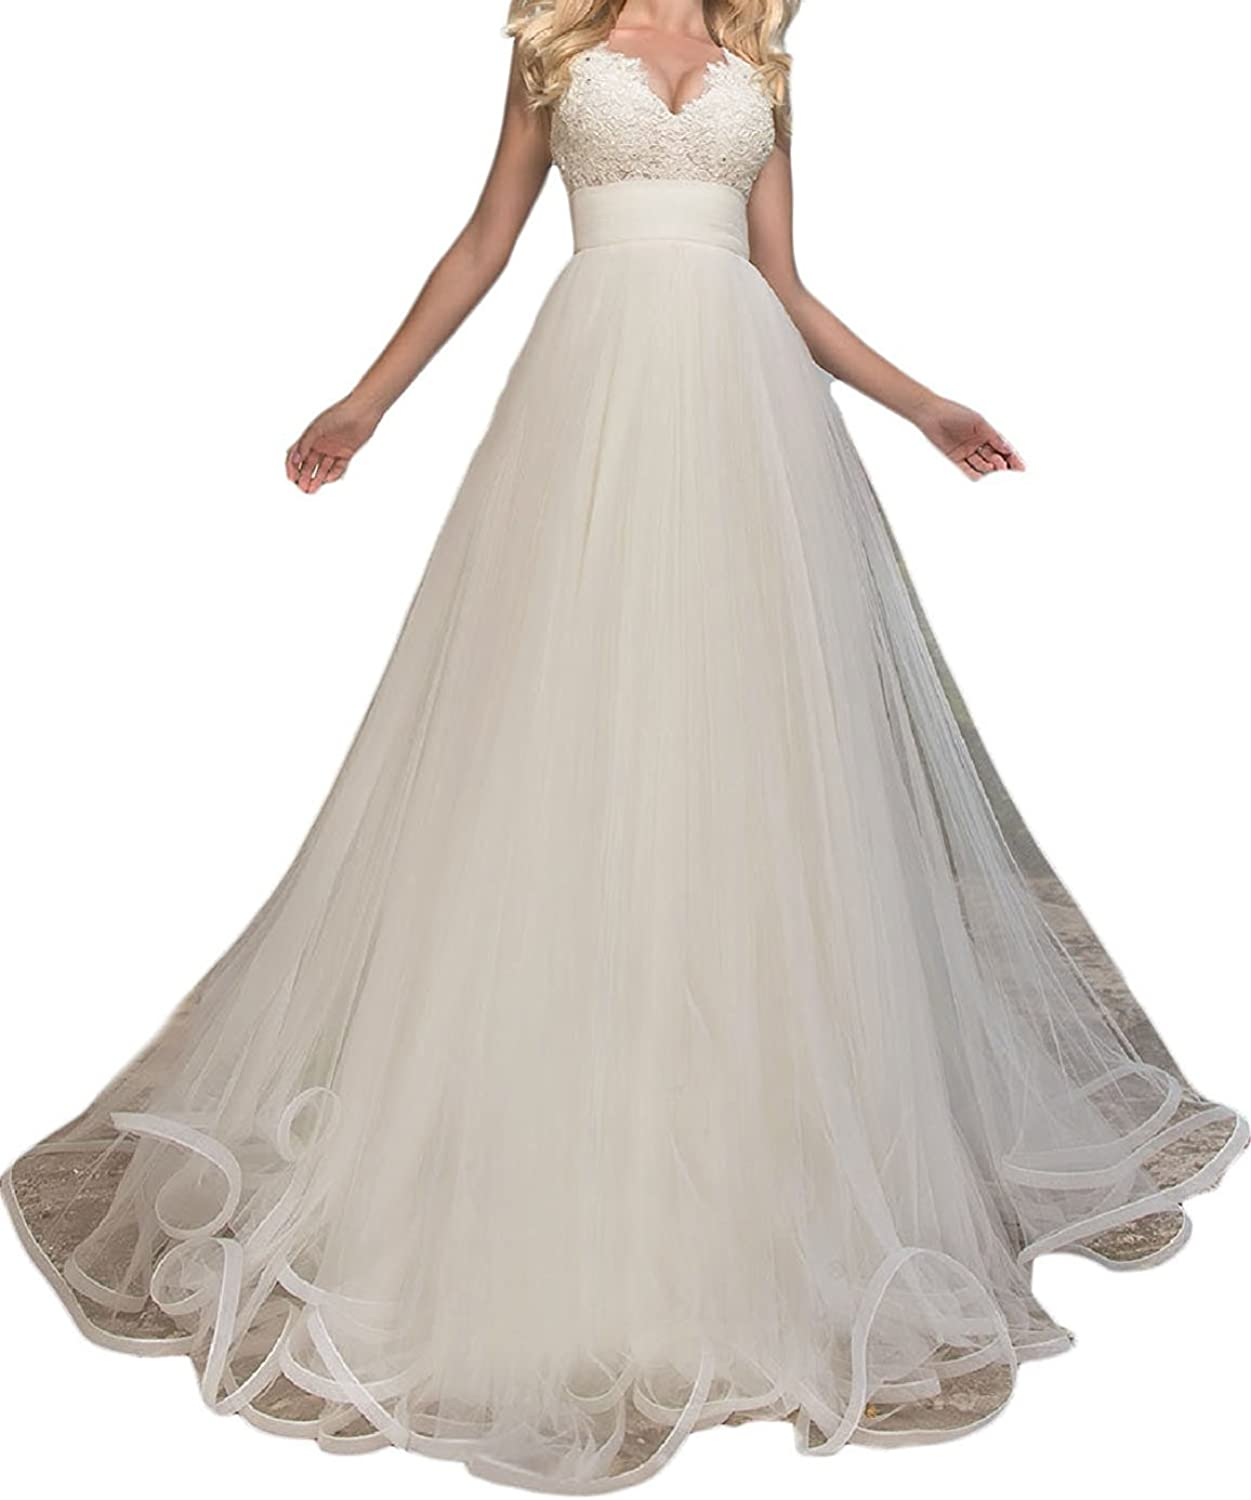 LISA.MOON Women's V Neck ALine Lace Applique Country Wedding Dresses Bridal Gown